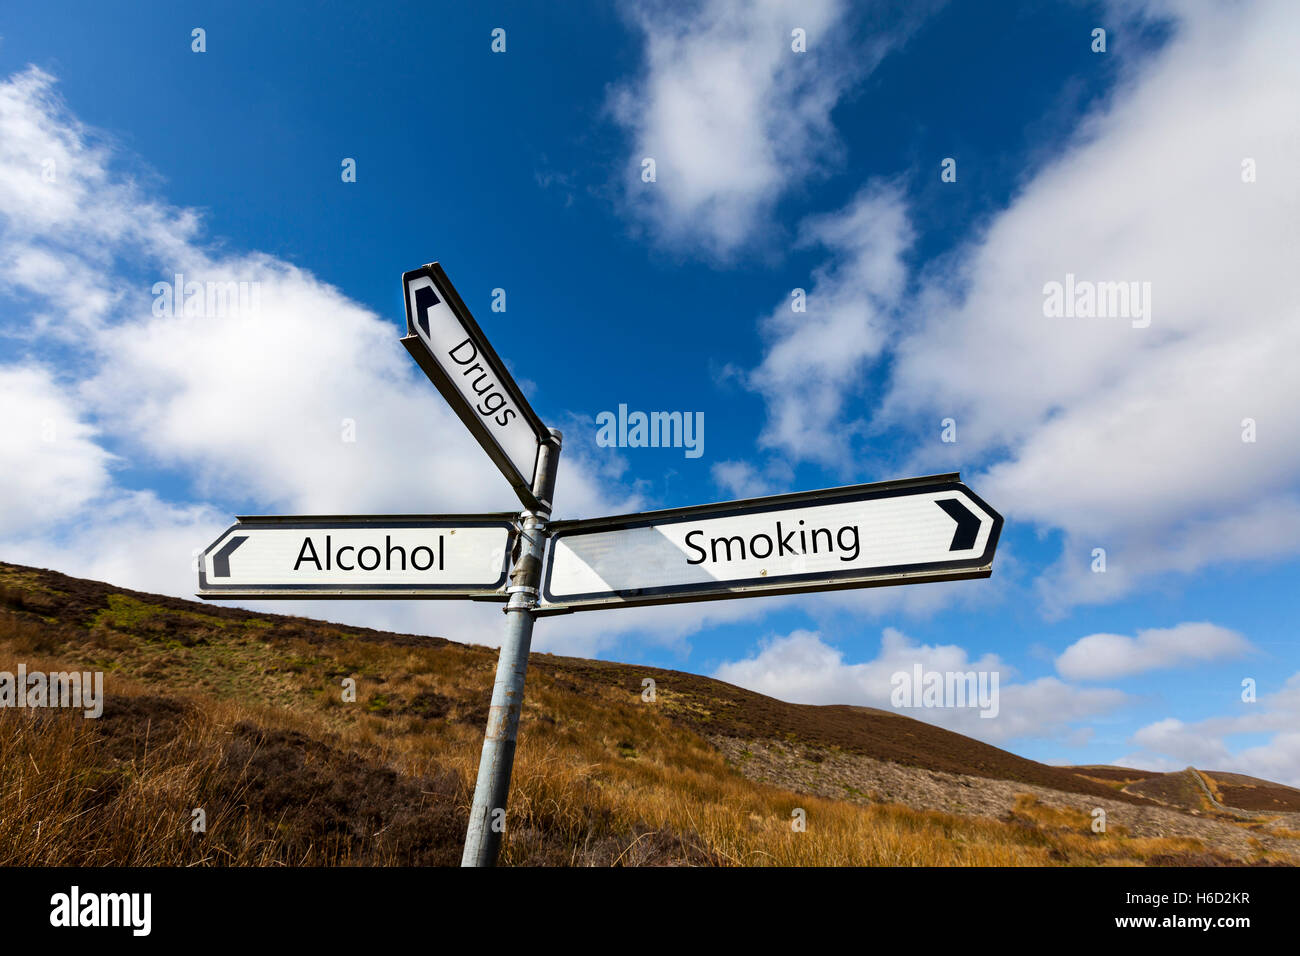 Vices drugs alcohol smoking sign concept vice to give up stop smoking taking drugs drinking alcohol conceptual UK - Stock Image